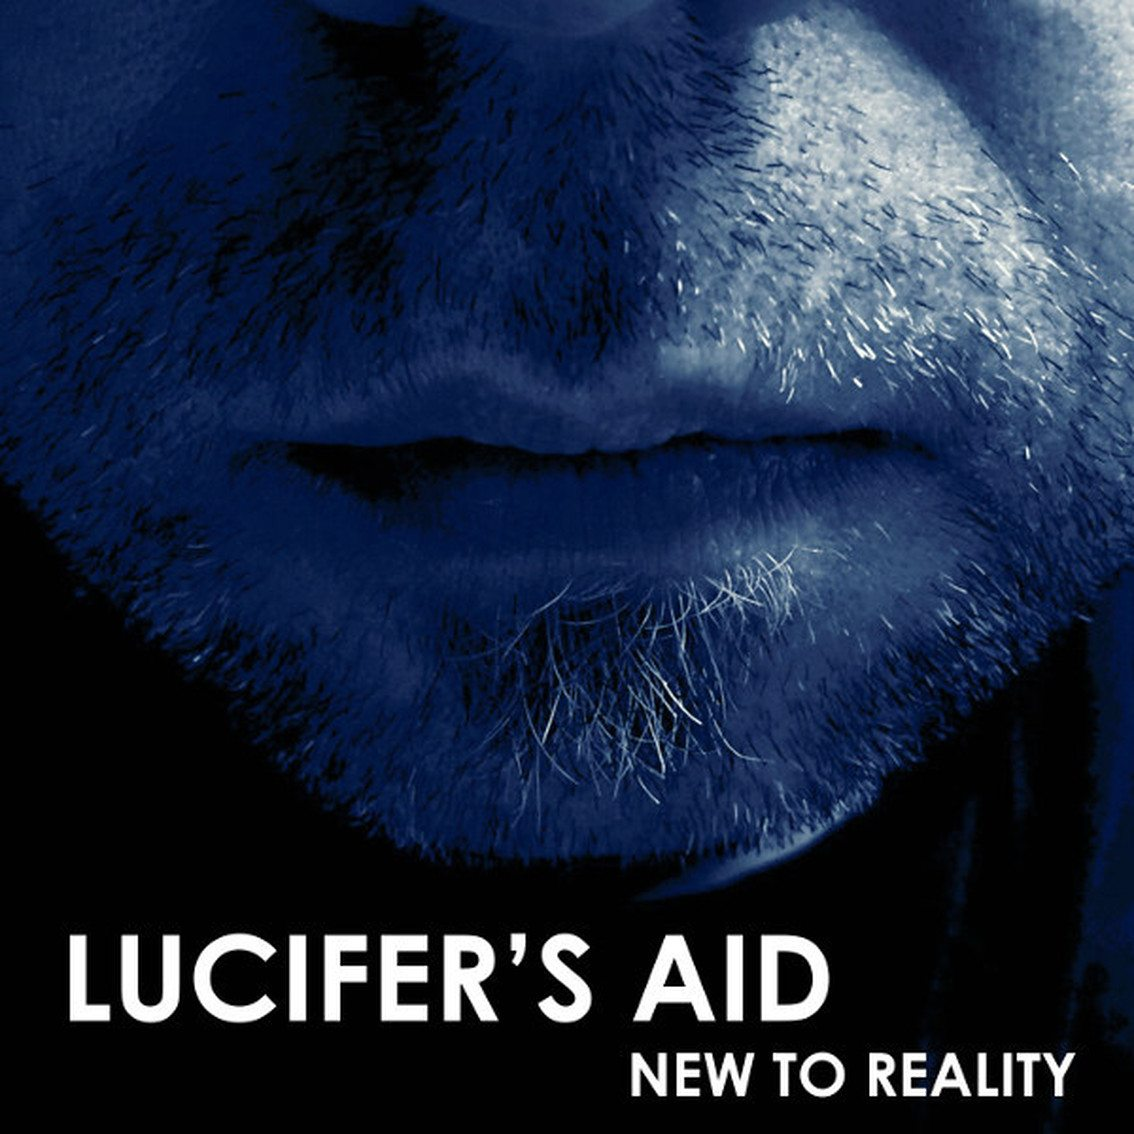 Lucifer's Aid debuts with'New To Reality' - check already a first track